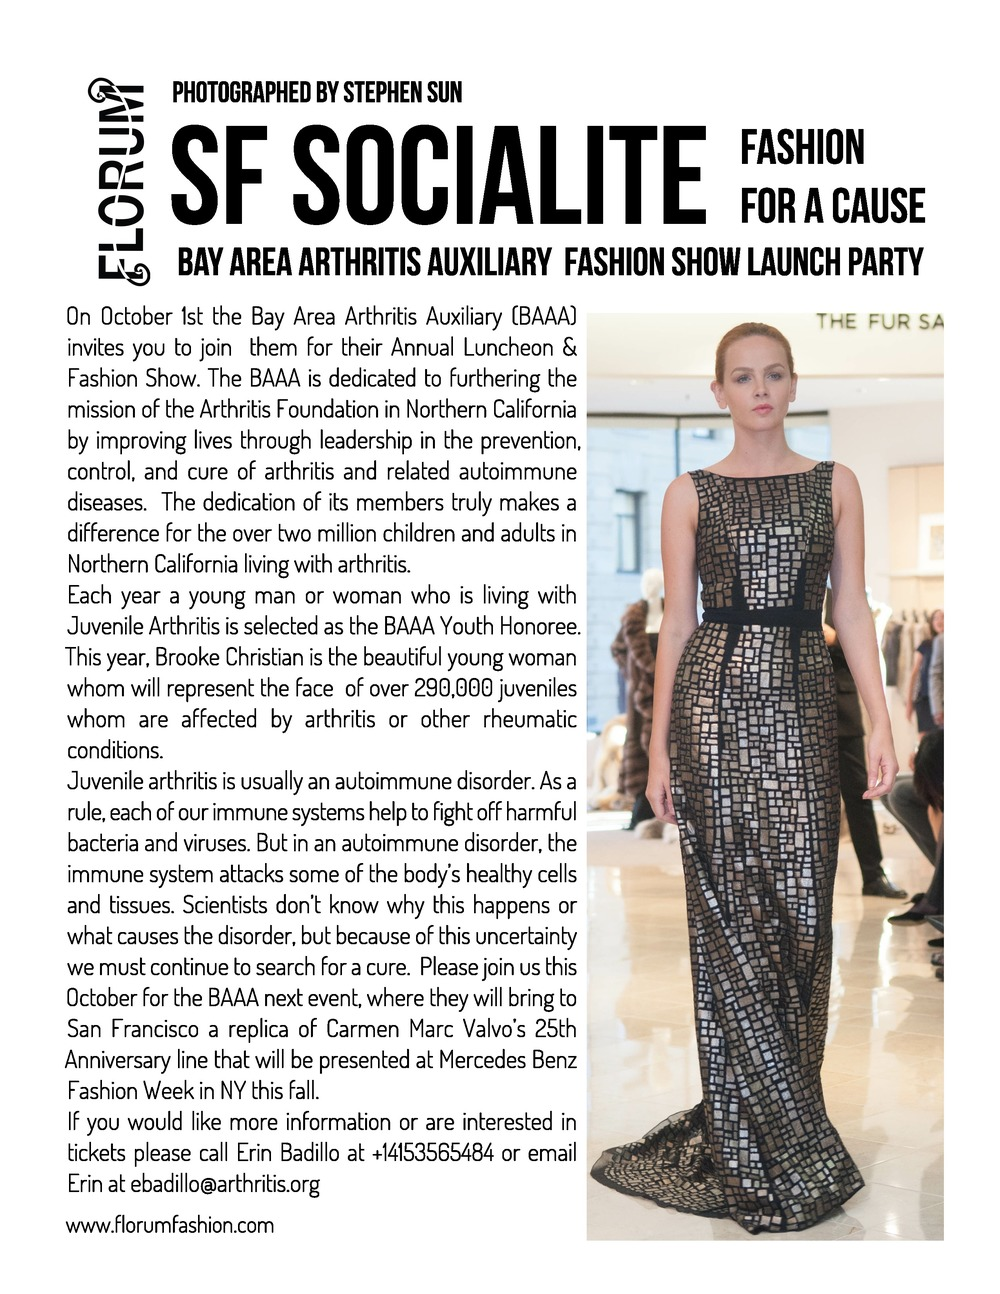 Bay Area Arthritis Auxiliary Carmen Marc Valvo Launch Party at Saks Fifth Avenue San Francisco